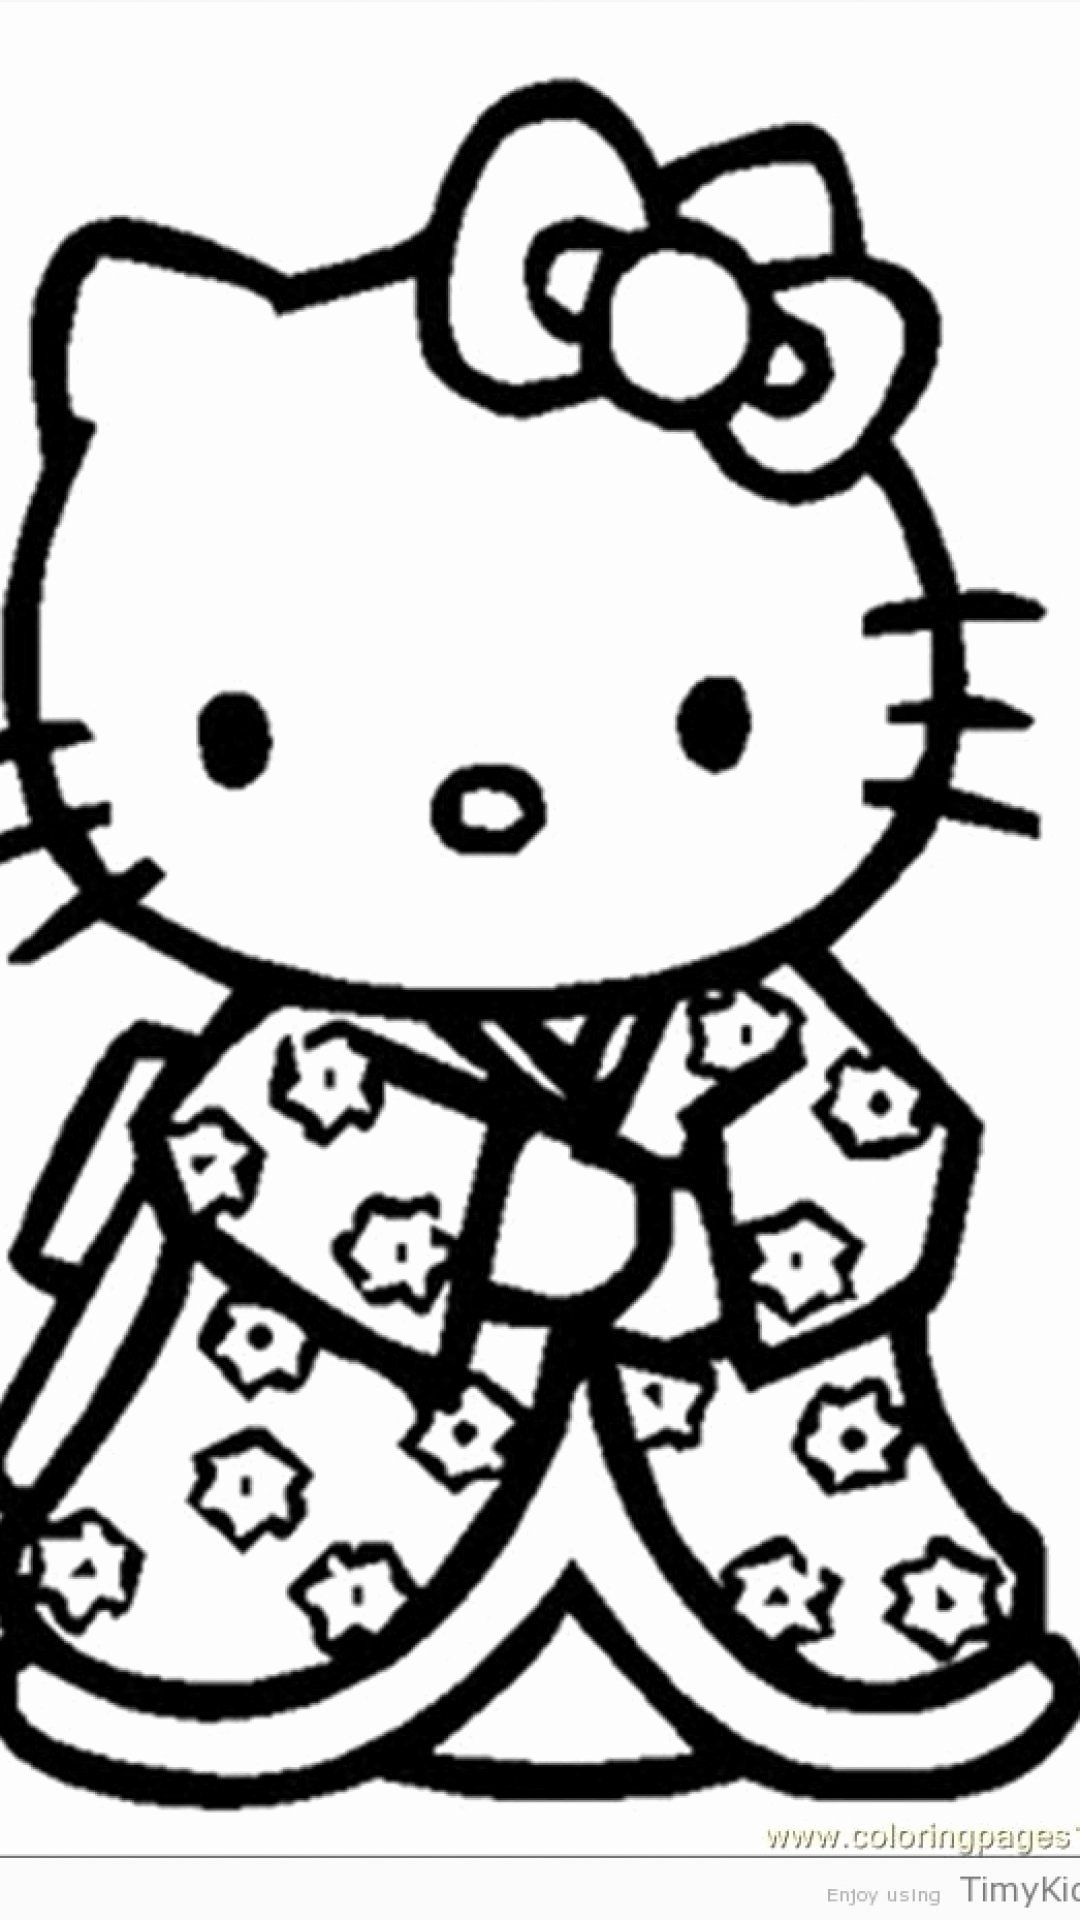 Hello Kitty Coloring Book Beautiful 28 Most Great Cozmdey Angel Hello Kitty Coloring Pages In 2020 Hello Kitty Colouring Pages Hello Kitty Coloring Cat Coloring Book